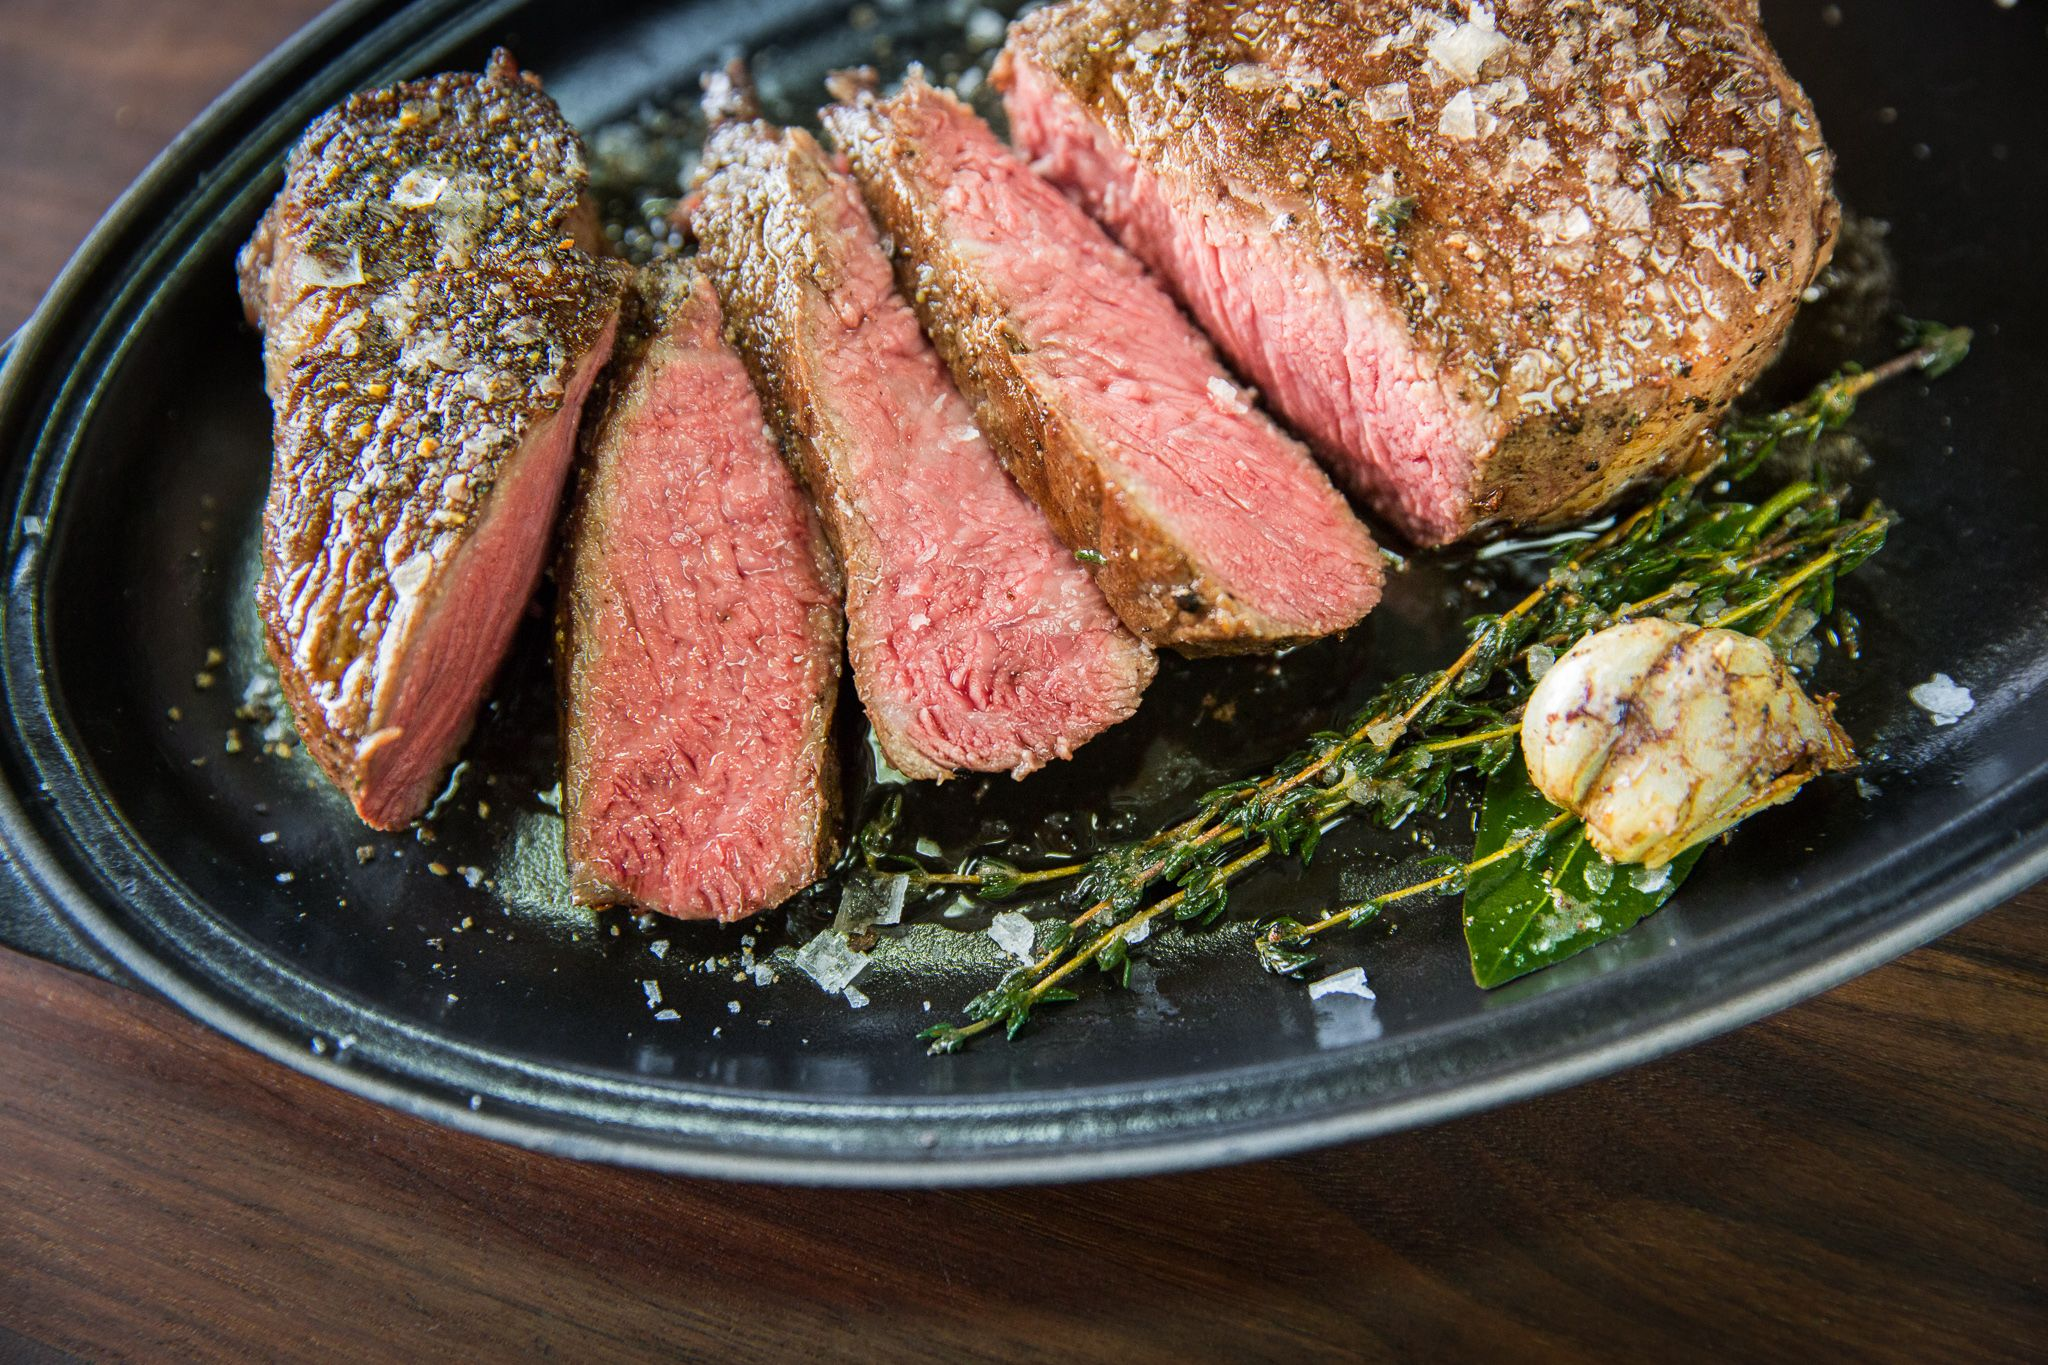 Sous Vide Steak Recipe Cooking The Perfect Steak Sous Vide Cooking Food Recipes